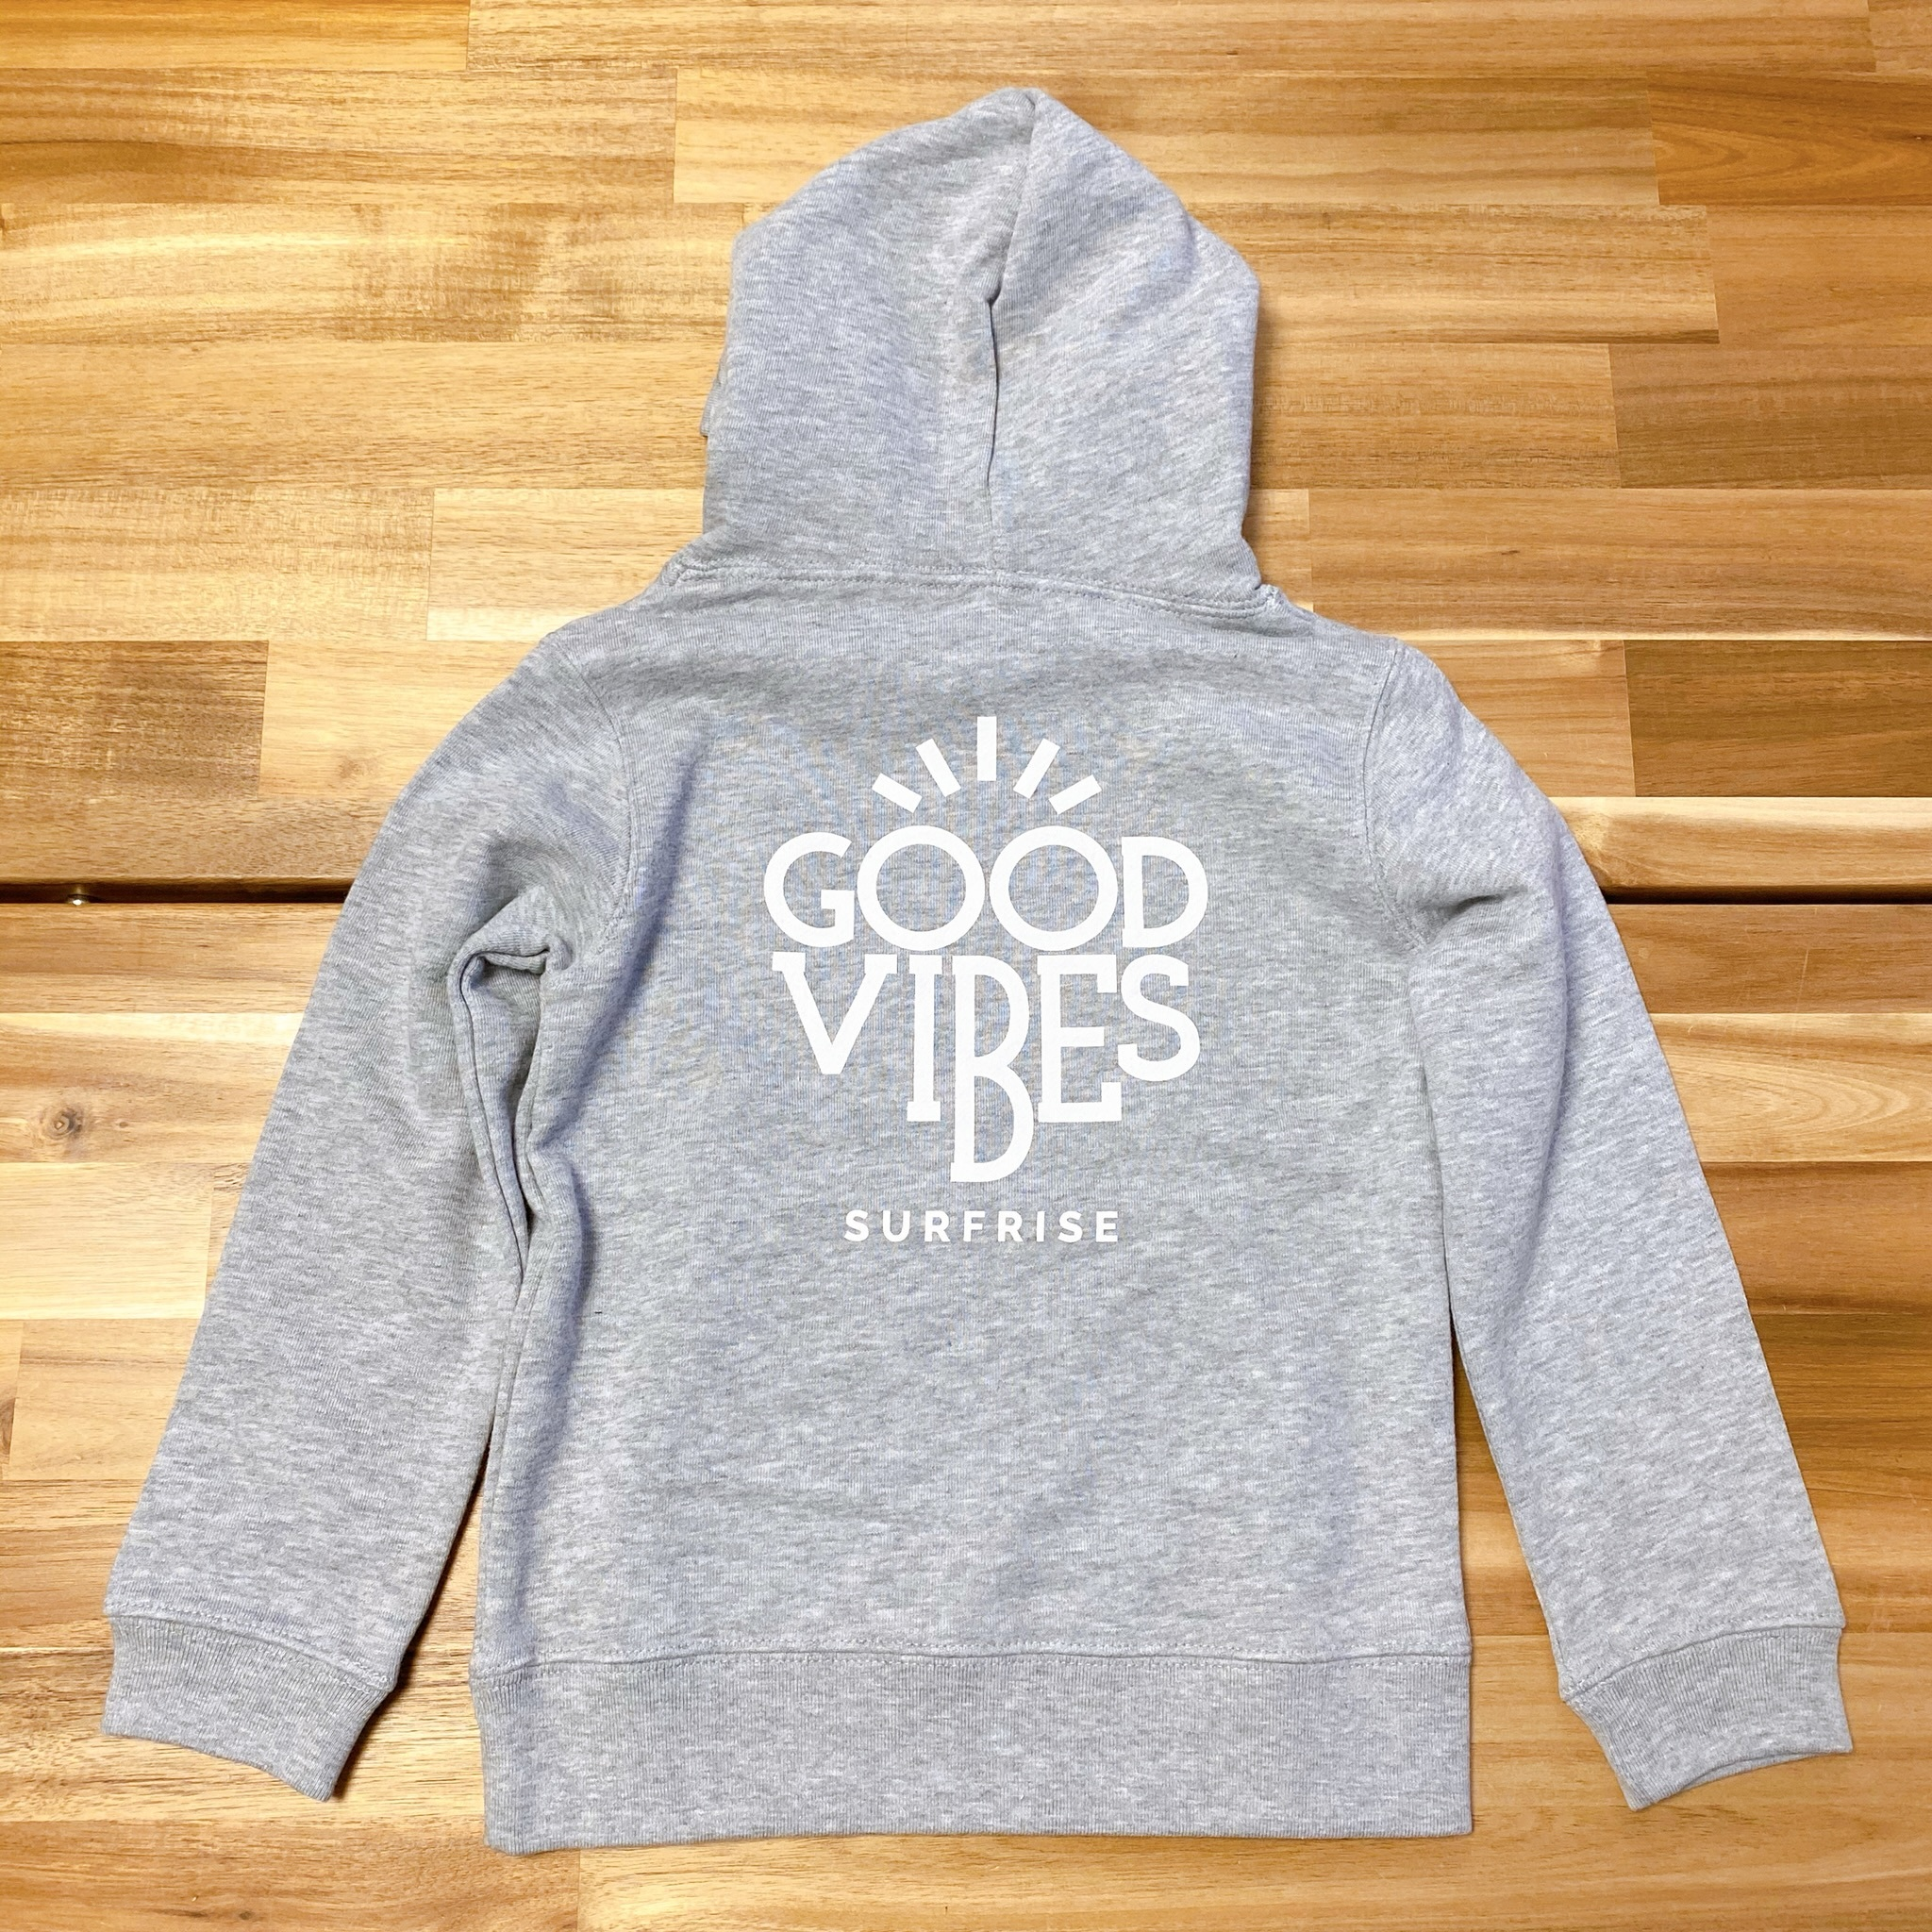 ★Kids★ GOOD VIBES Hoodie - Mix gray